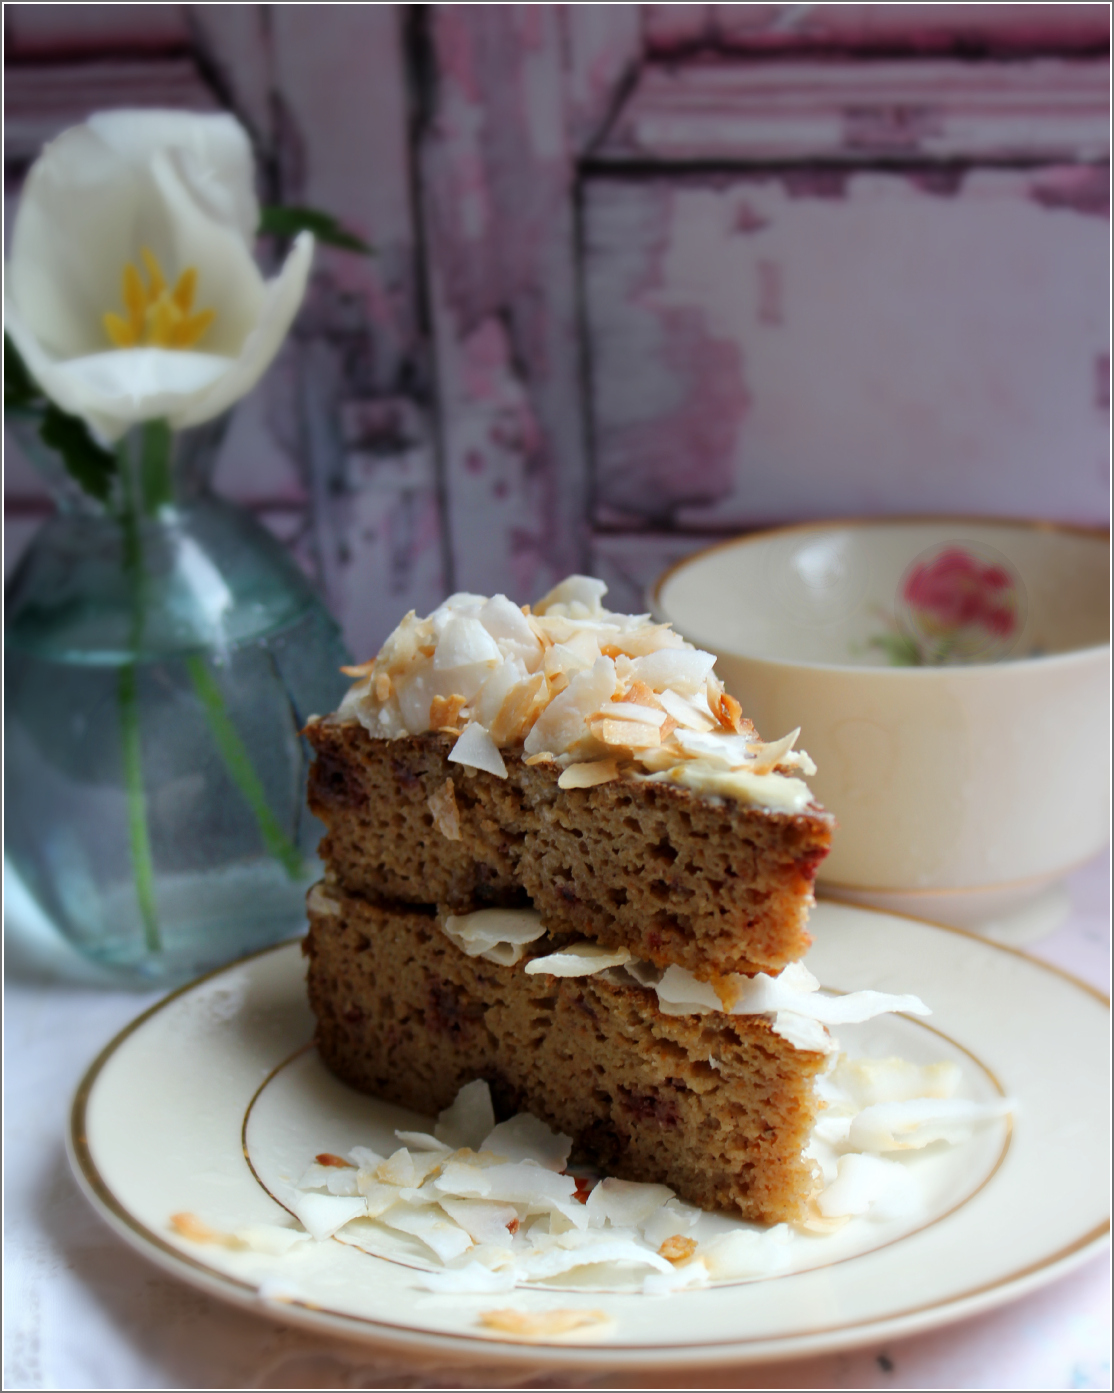 Carrot Cake With Tulip by Dena T Bray